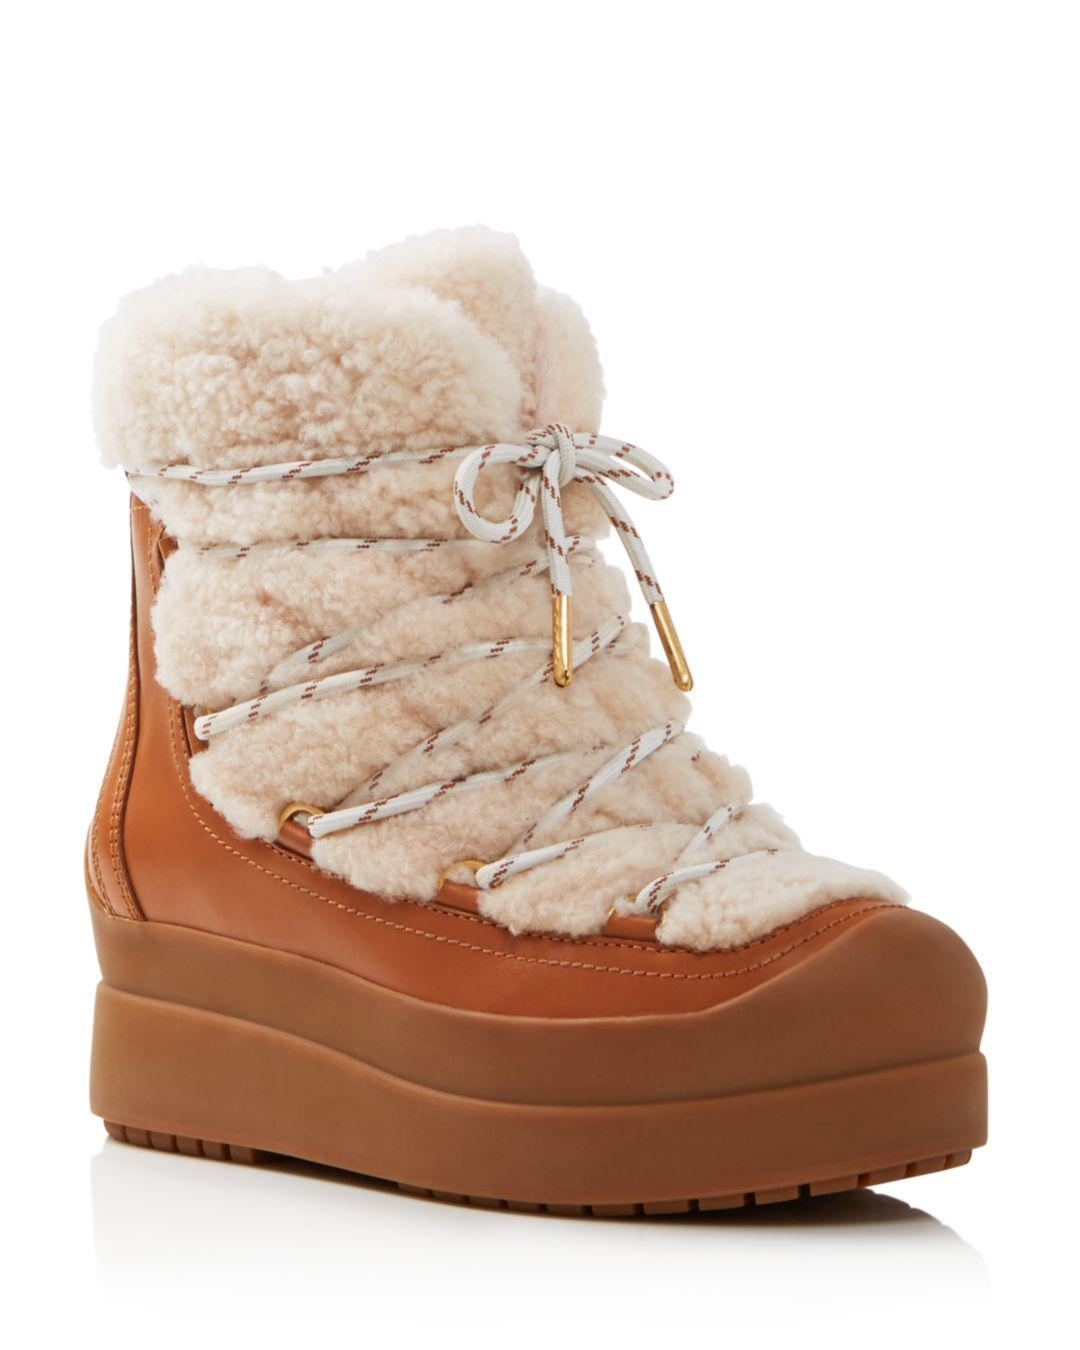 9a7977705ca5 Tory Burch. Natural Women s Courtney Round Toe Leather   Shearling Booties